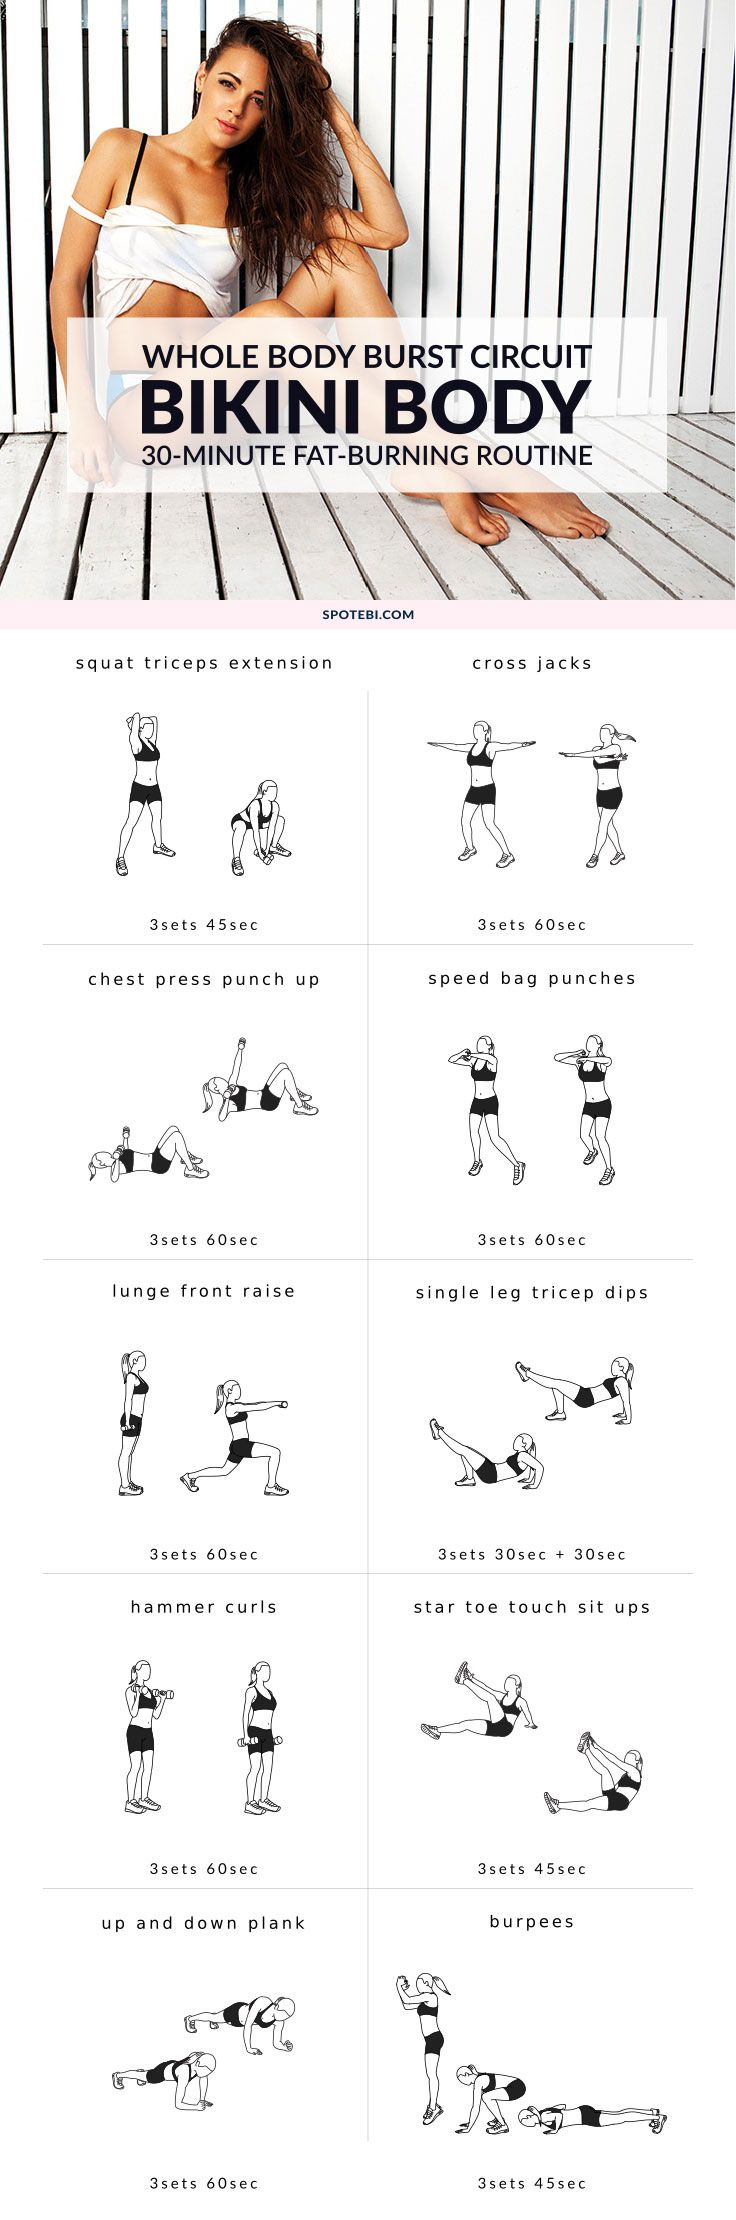 Are you ready for a bikini body?! Try this 30-minute burst workout to increase fat oxidation, keep your hormones in balance and improve your overall performance. Get impressive fat-burning benefits and start getting your body ready for swimsuit season! https://www.spotebi.com/workout-routines/bikini-body-burst-workout/